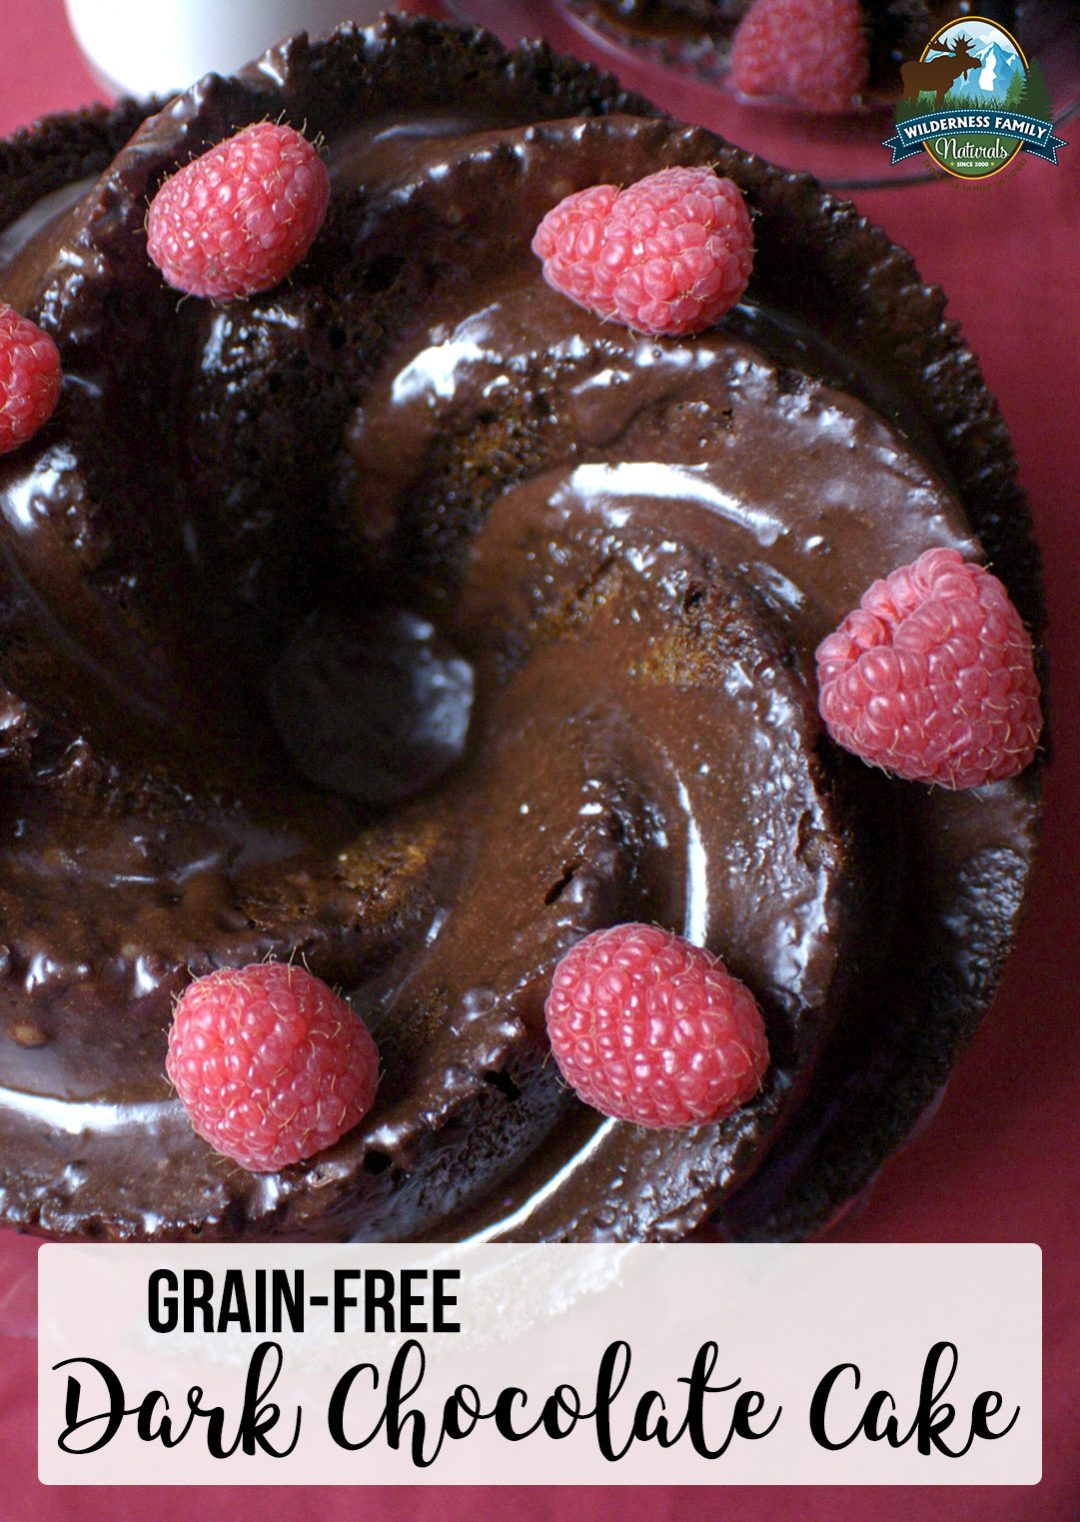 Grain-Free Dark Chocolate Cake | Let's get real about chocolate cake. All that sugar and all those heavy carbs are not healthy. We all know that, right? Skip the wheat, grains, and gluten and try this Paleo-friendly grain-free dark chocolate cake instead! It's light, moist, and oh so chocolate-y! | WildernessFamilyNaturals.com